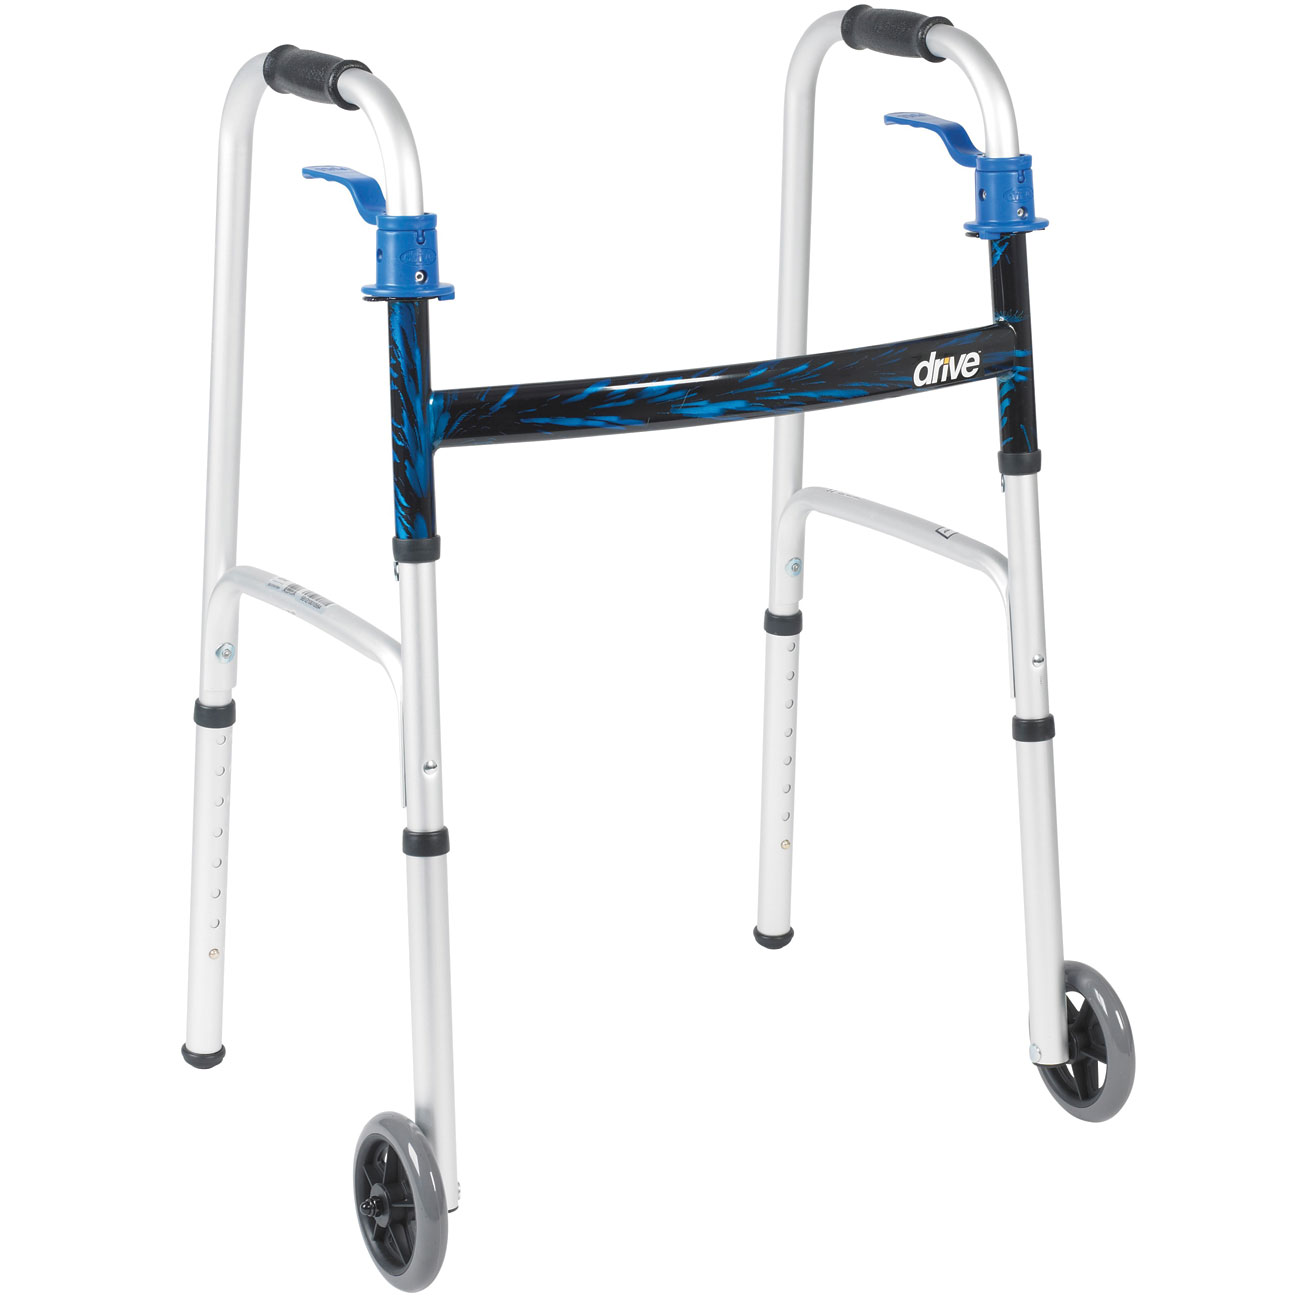 Deluxe Trigger Release Folding Walker with 5 in. Wheels